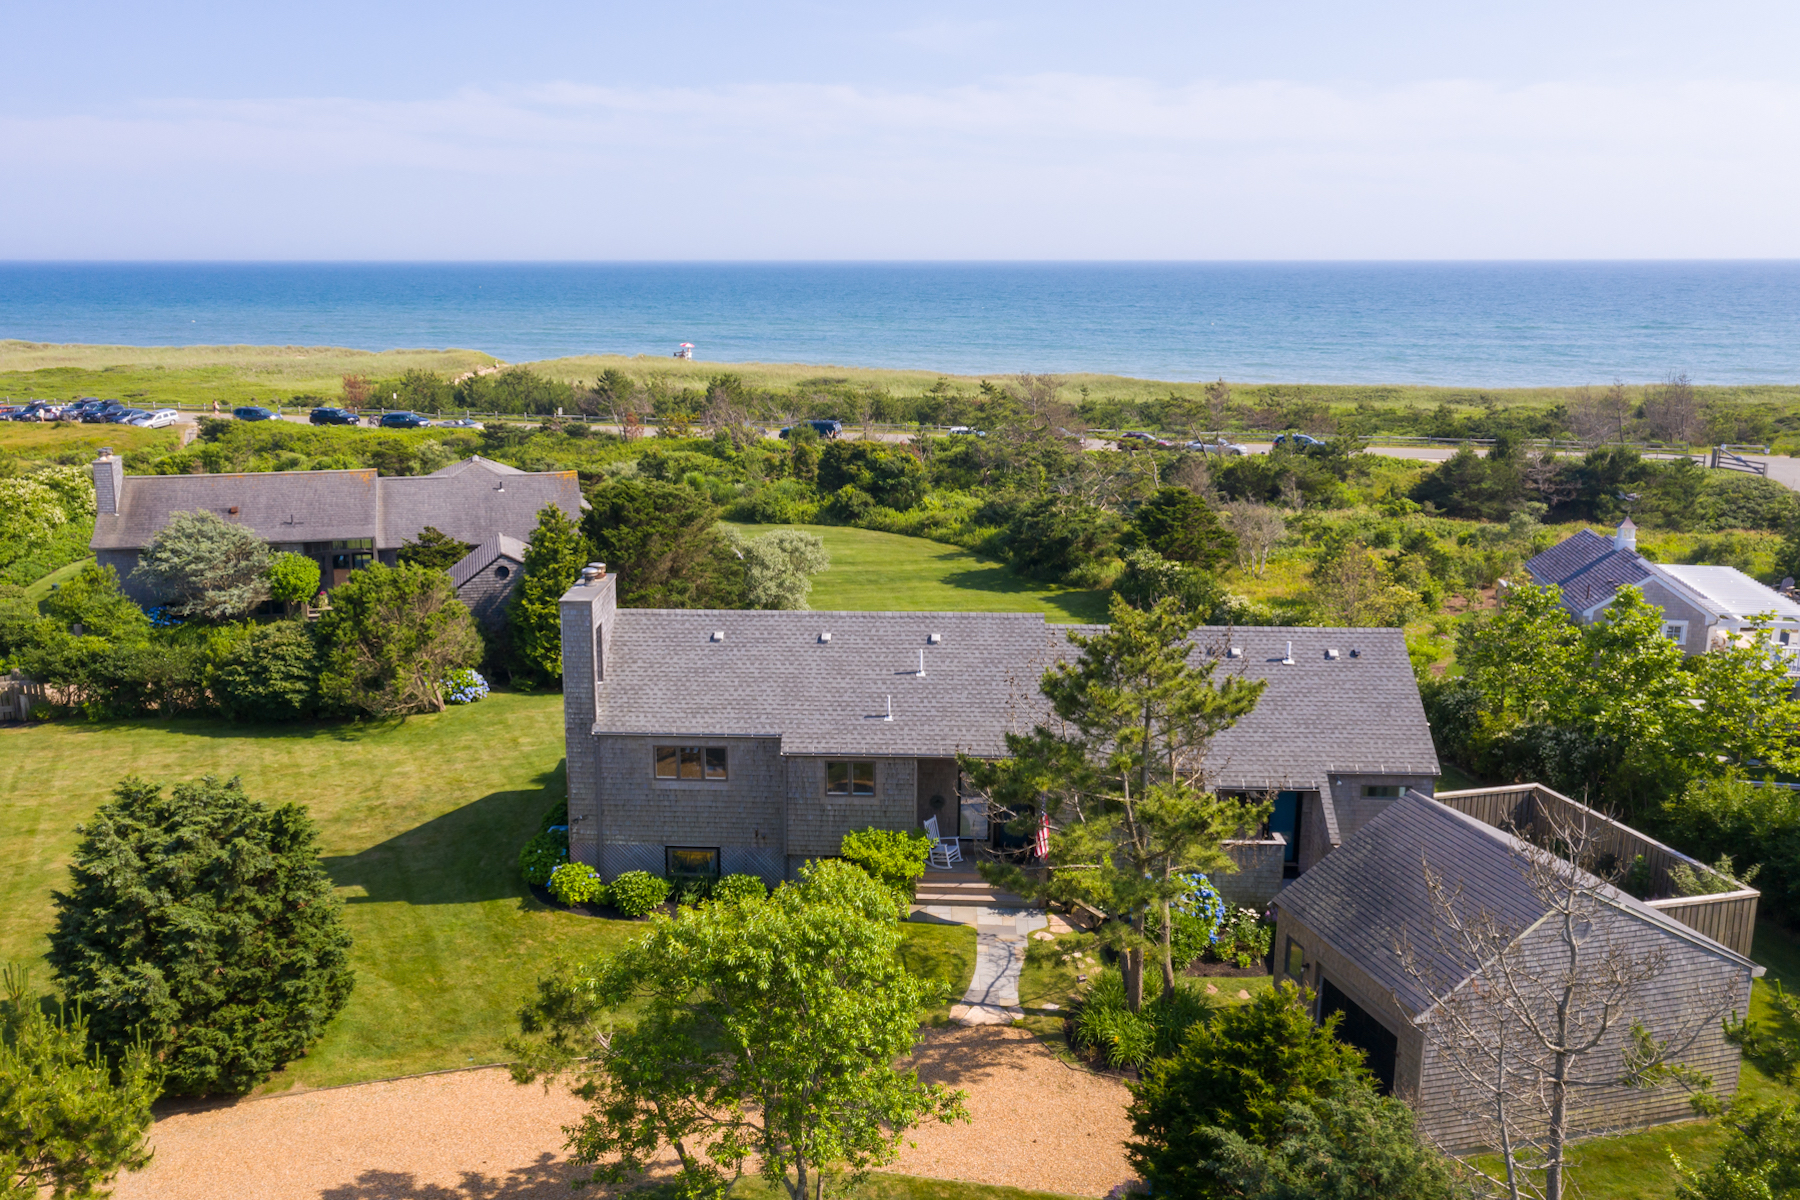 Single Family Homes for Active at Beach House in Katama 102 Mattakesett Way Edgartown, Massachusetts 02539 United States